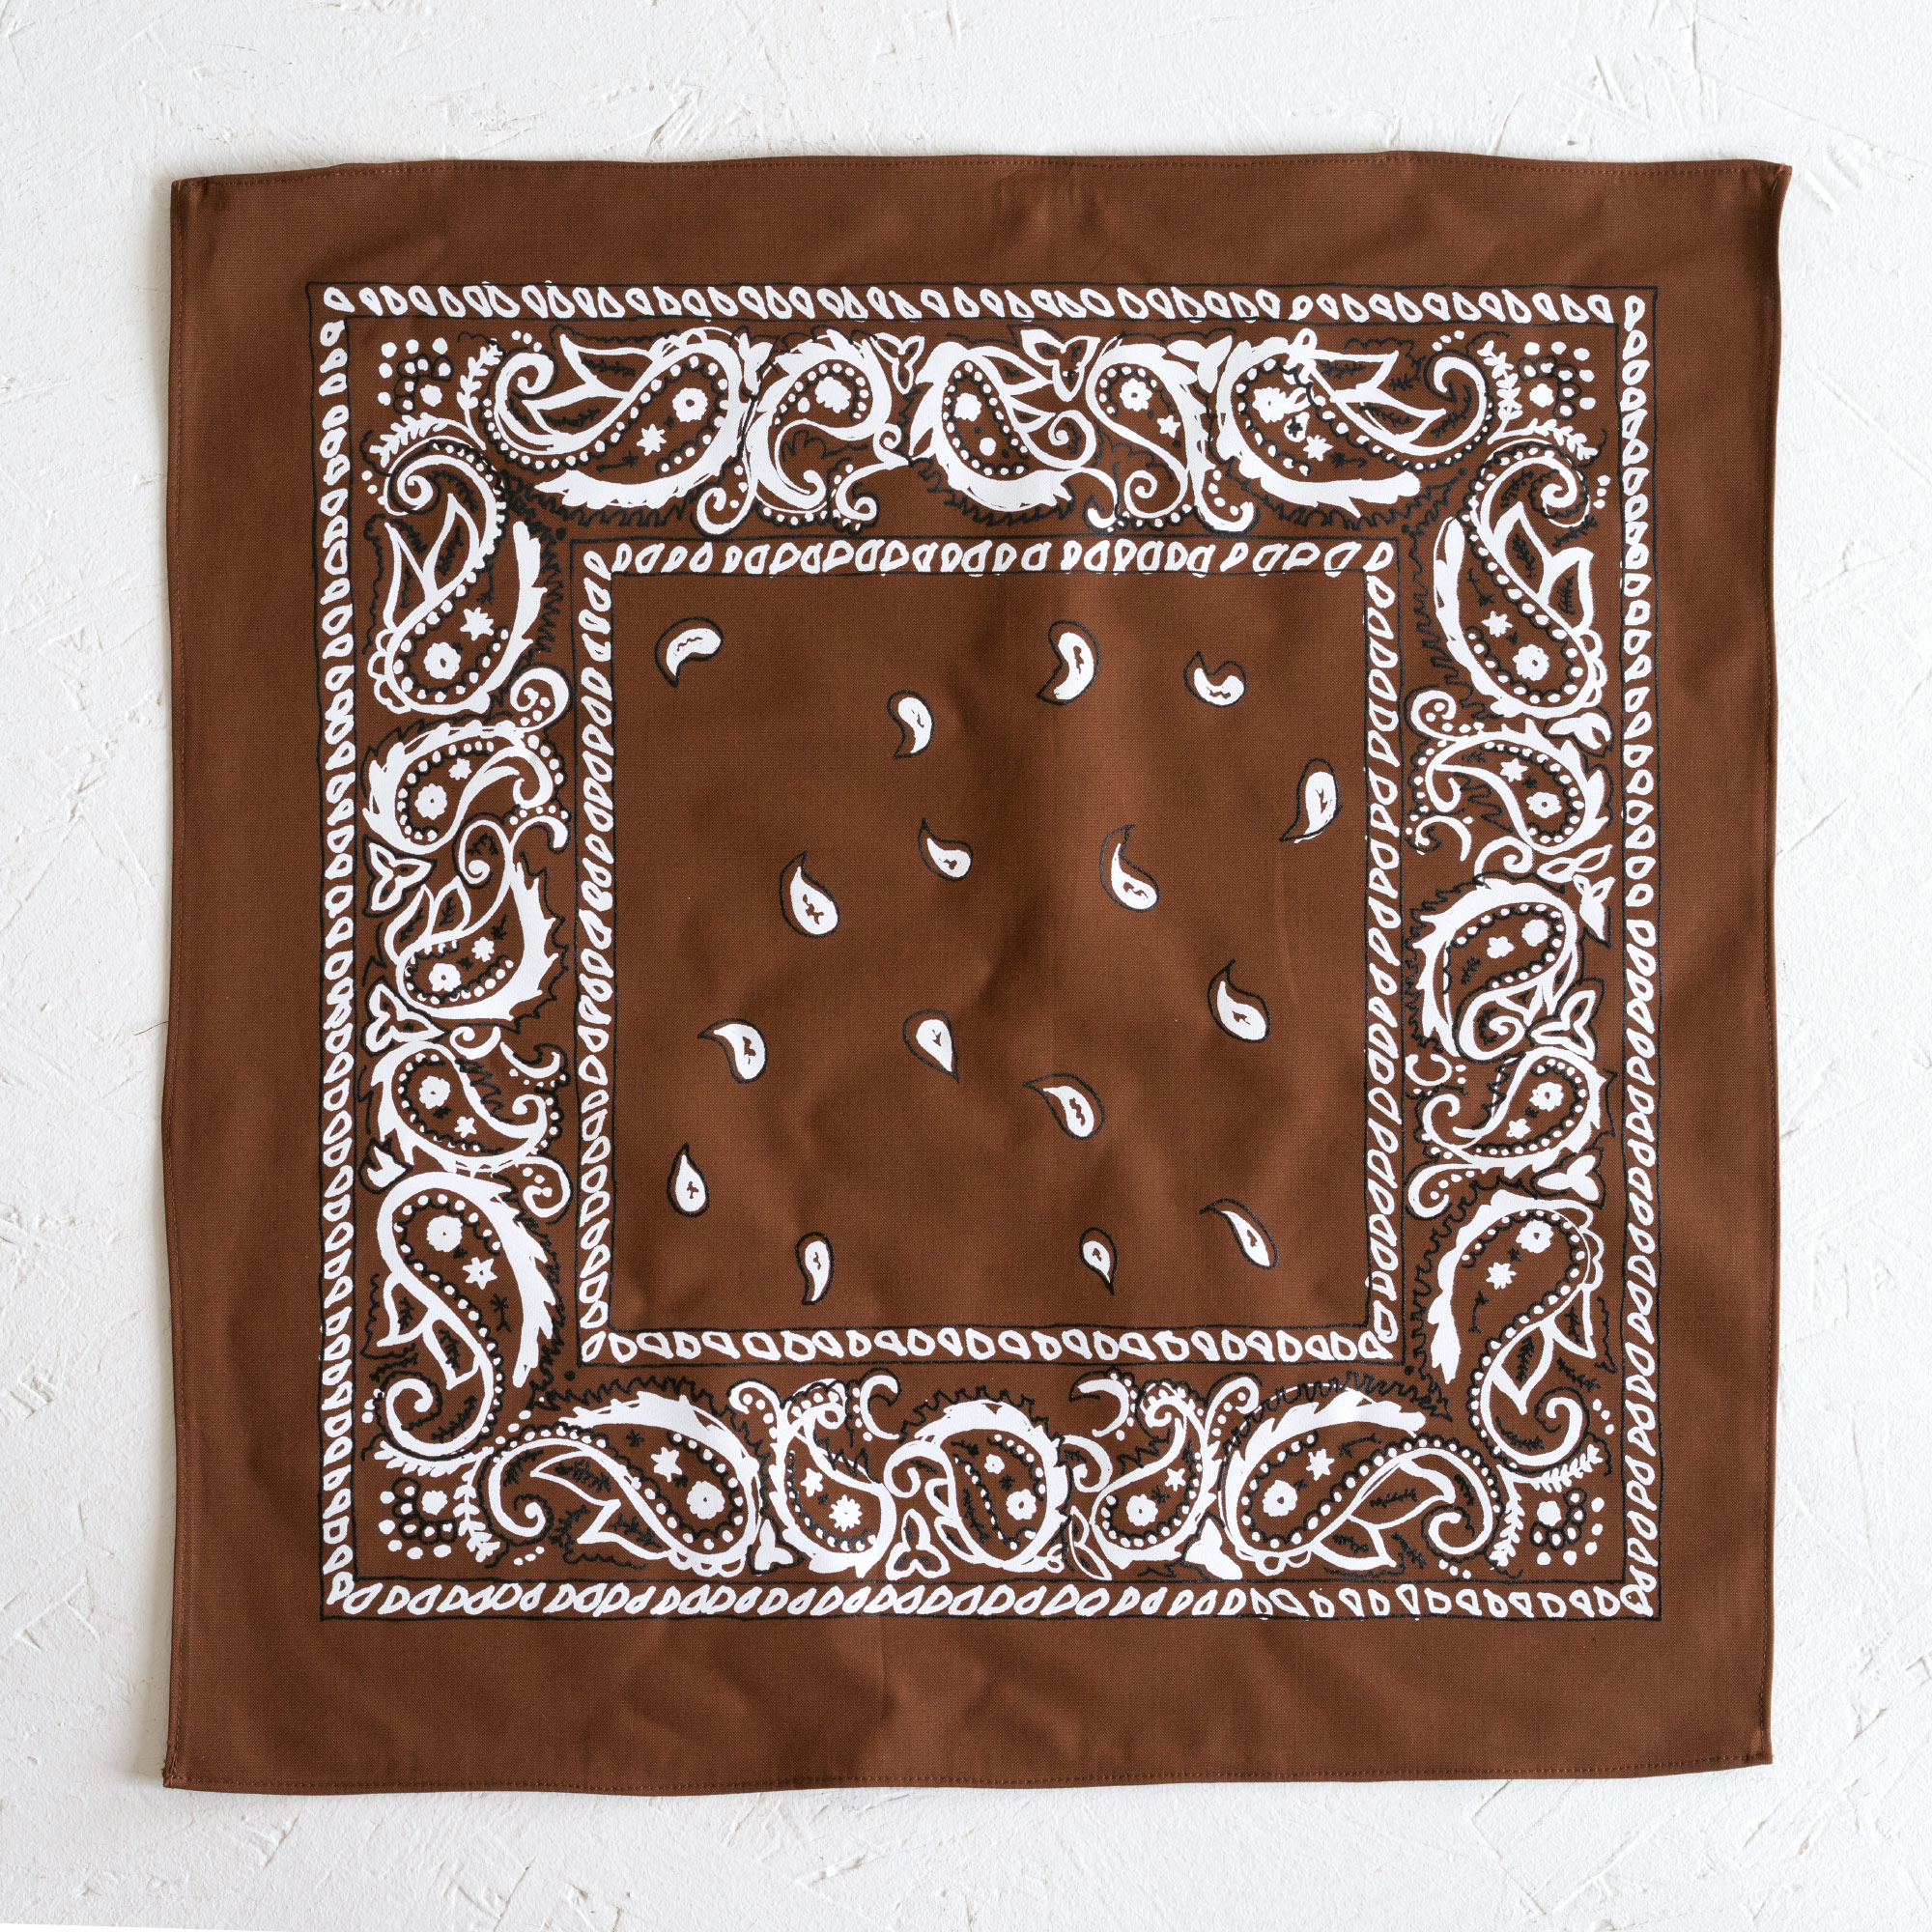 Nancy Davidson, *Hanky Code* (Brown), 2016, Two color silkscreen on hand cut & sewn cotton, 17 x 17 inches (43.18 x 43.18 cm)